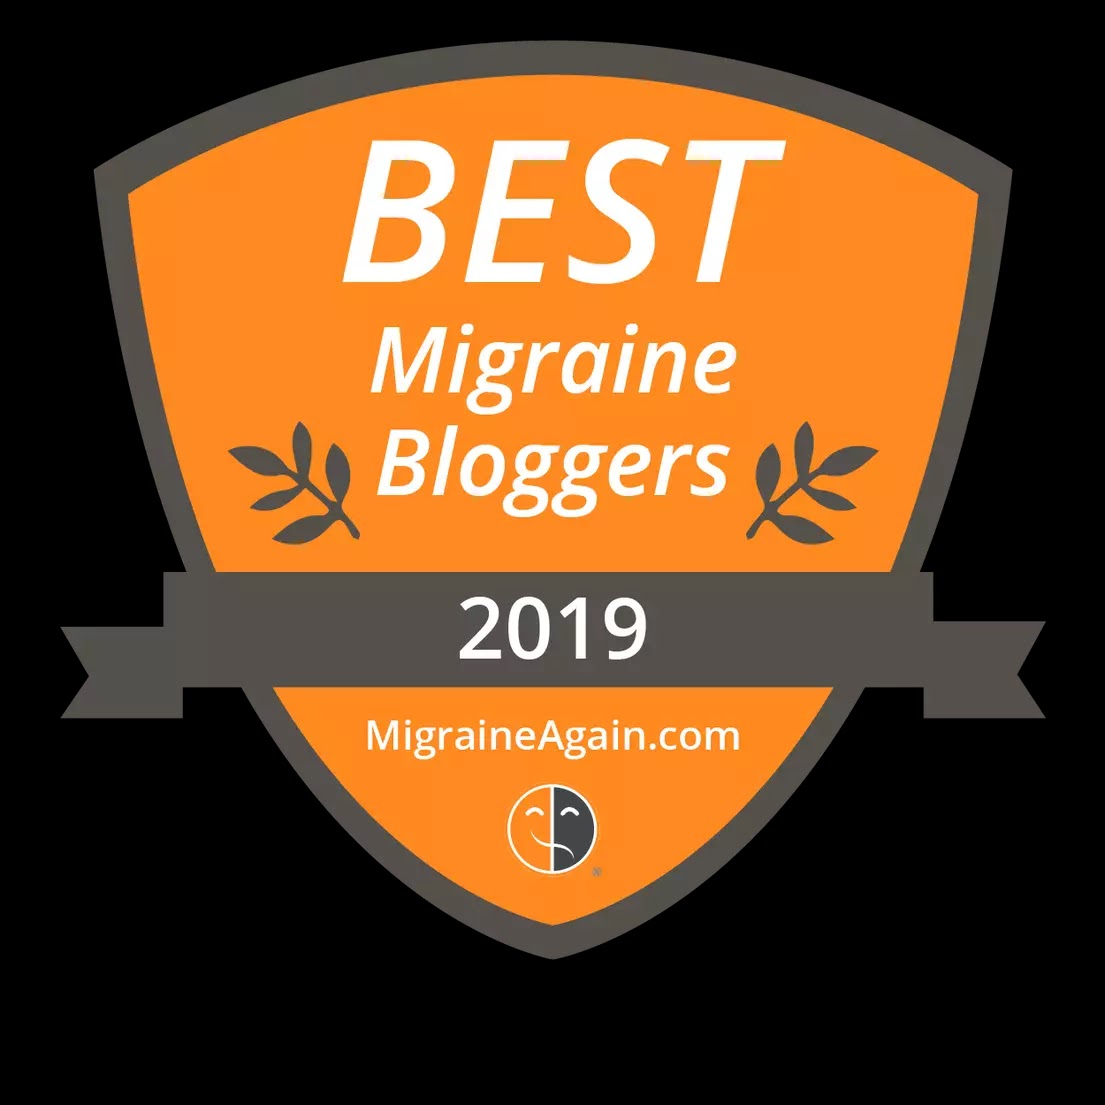 Best Migraine Blogger